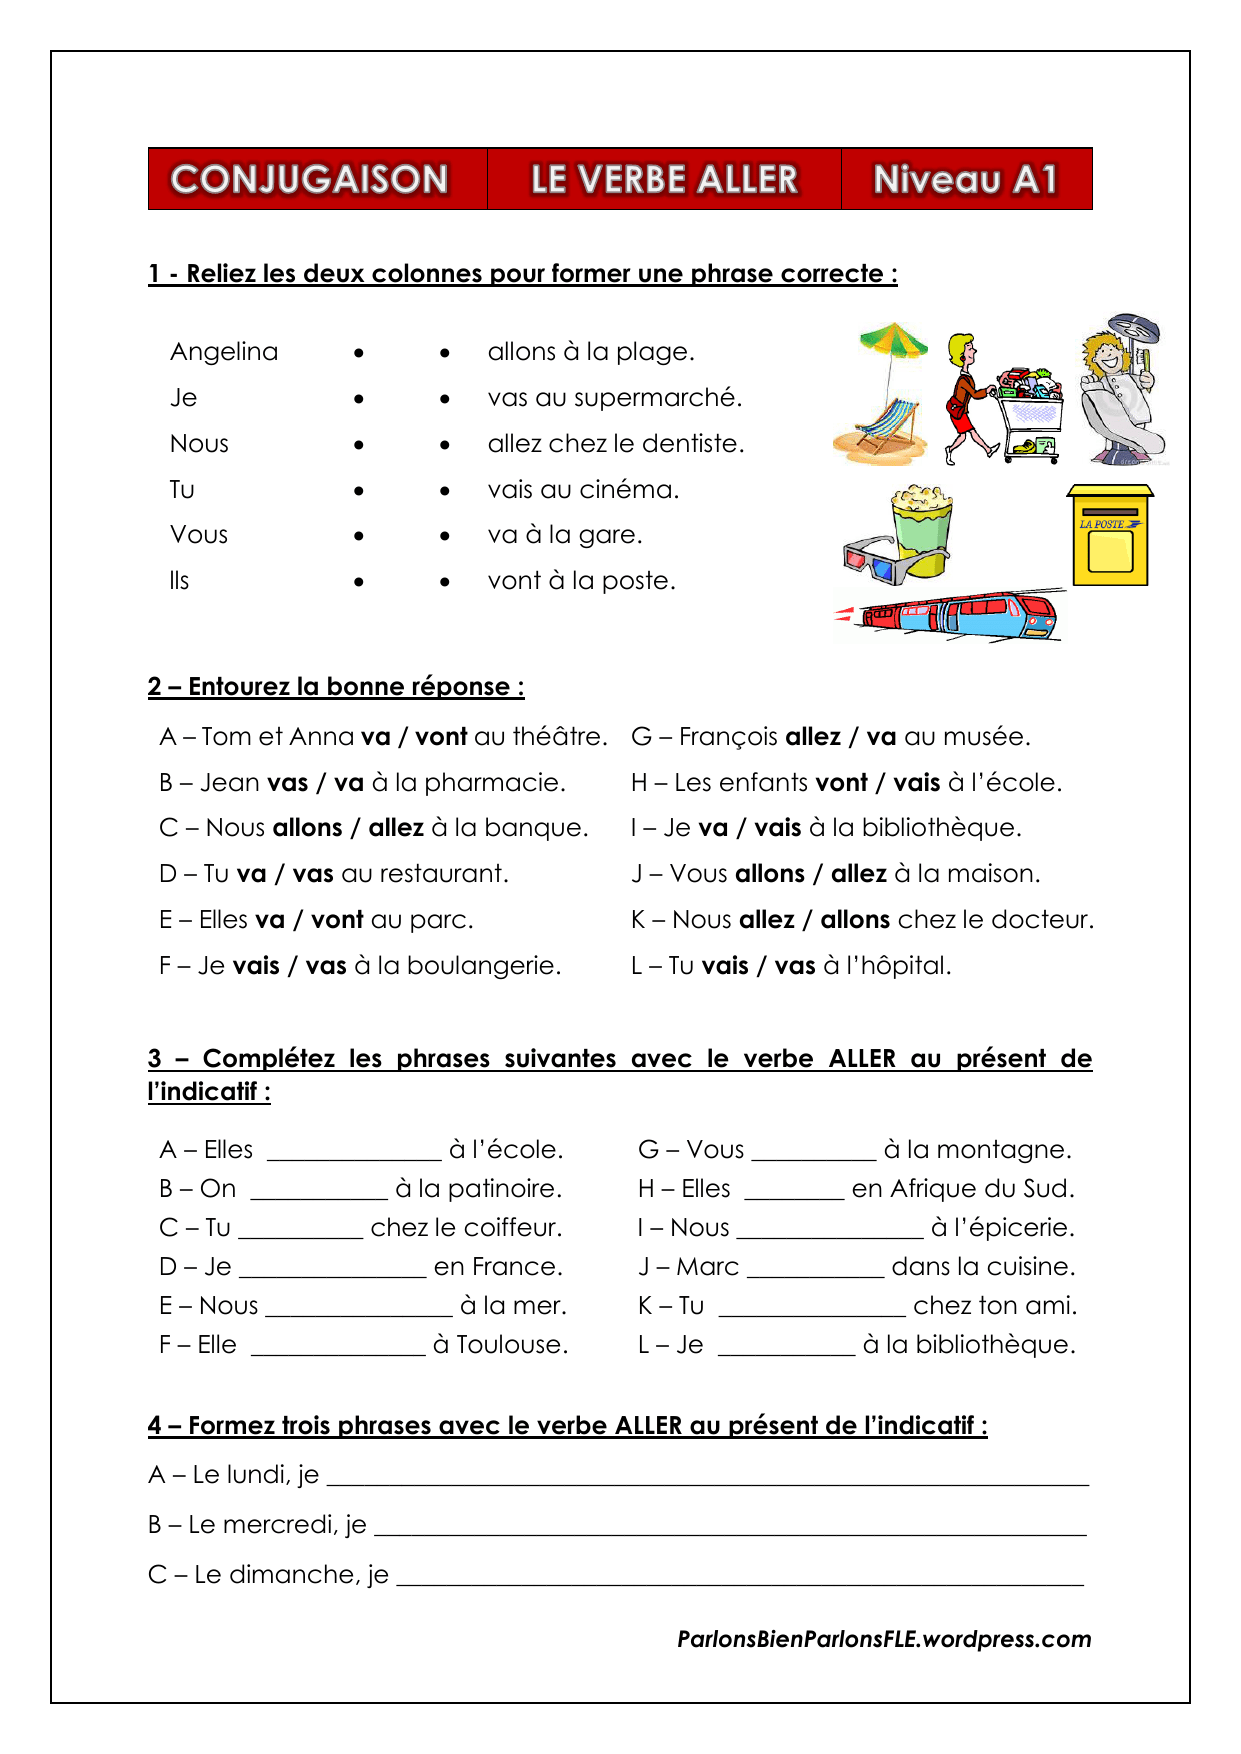 Le Verbe Aller Worksheet Printable Worksheets And Activities For Teachers Parents Tutors And Homeschool Families